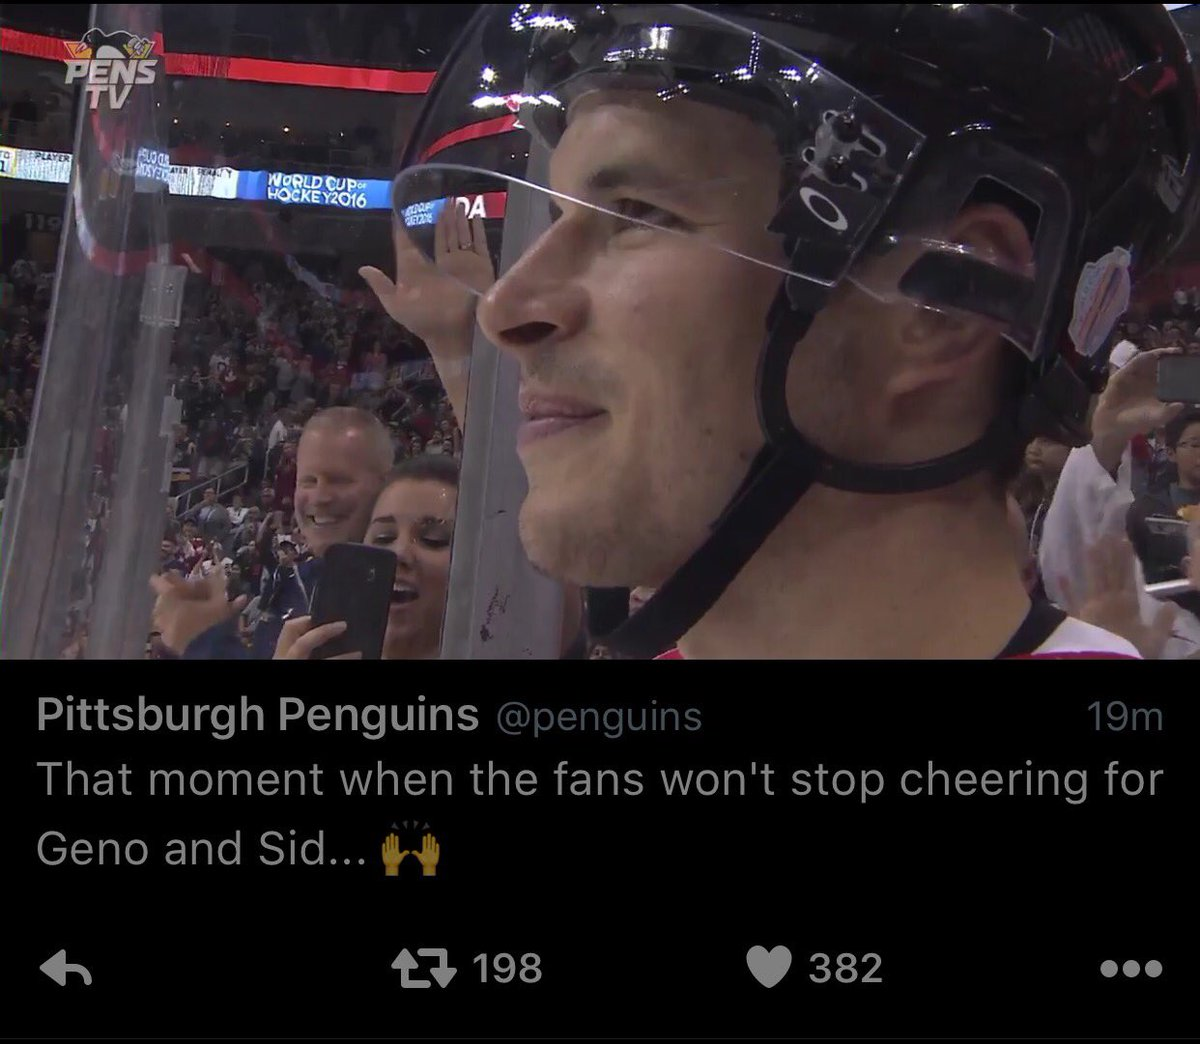 .@penguins Love this moment! Crosby loves Pittsburgh just as much as Pittsburgh loves Crosby. #WCH2016 #Pens https://t.co/PWg90C5kzp